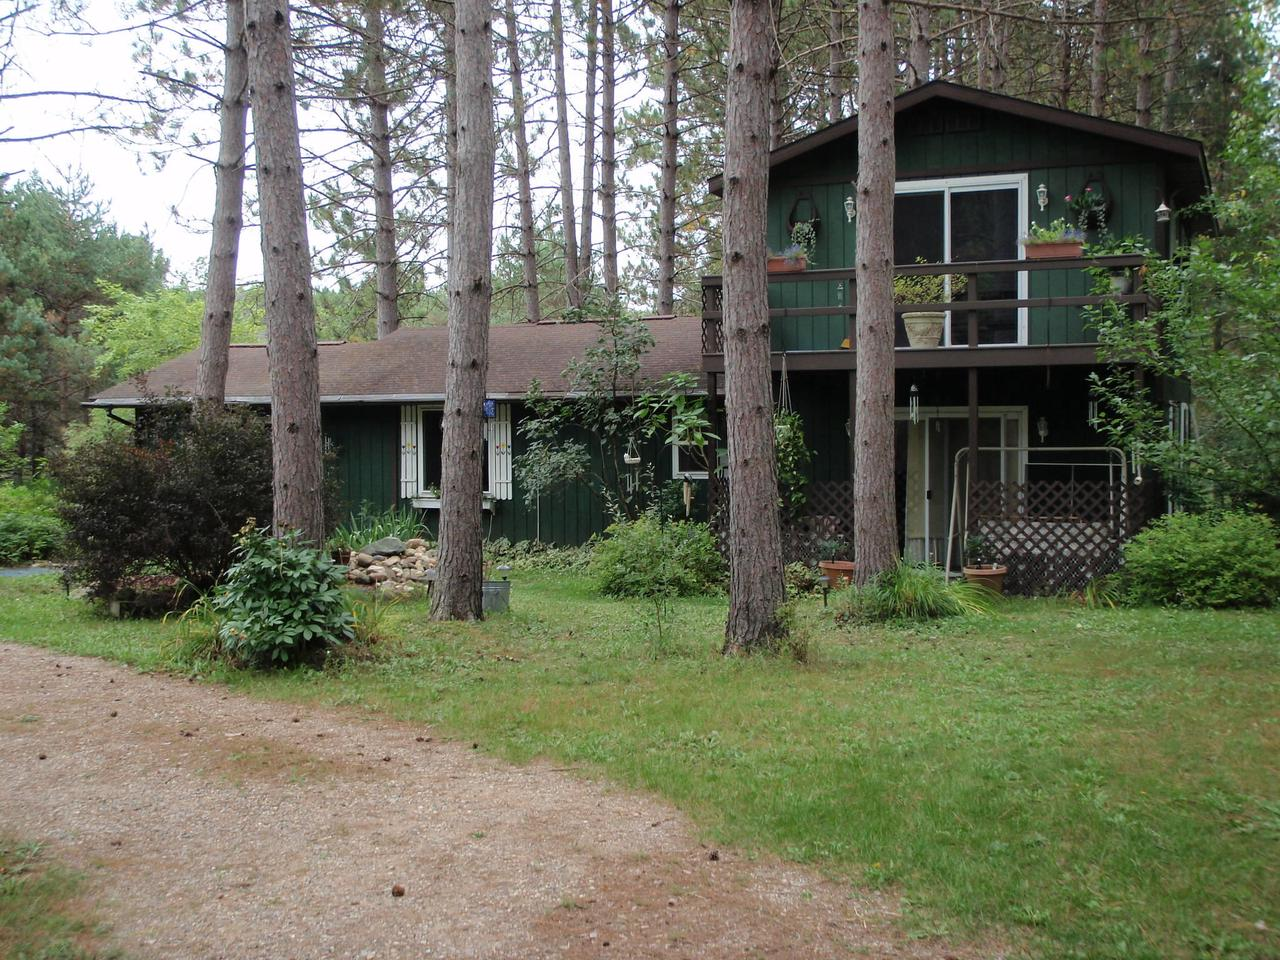 Set in a grove of tall, stately pines, this 2 story, two bedroom cottage is the perfect place to relax & leave behind the cares of the everyday world.  Propane space heaters & electric wall heaters will keep you cozy.  Close to all the North has to offer:  golf, fishing, hunting, trails, etc.  The three-car garage is perfect for all the toys.  Due to the recommendation of social distancing to prevent the spread of COVID-19, this property will not be shown per the seller's request.